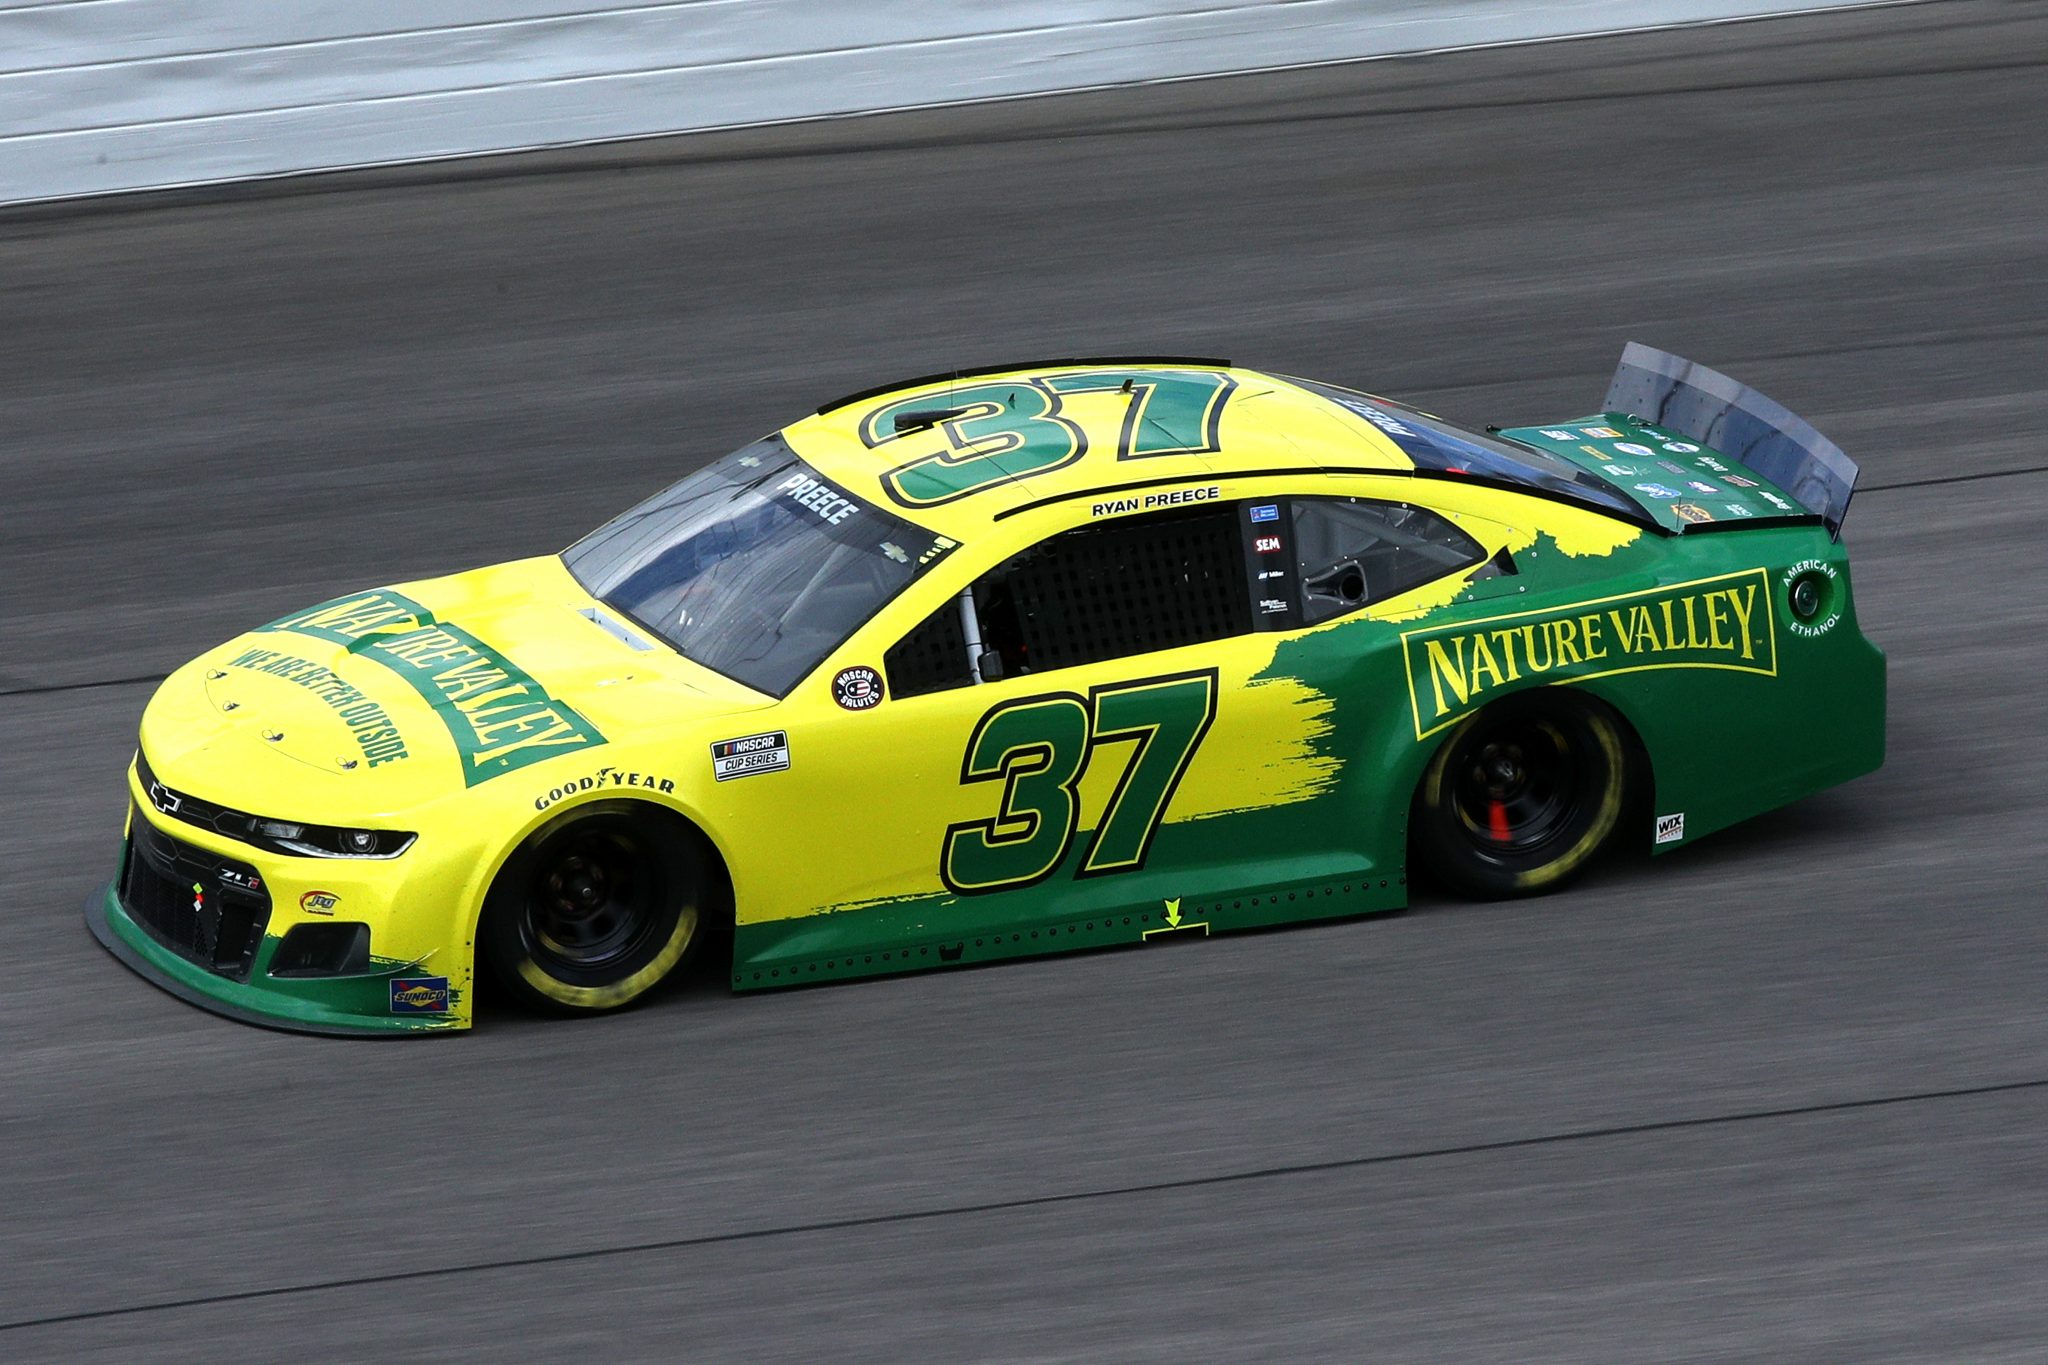 KANSAS CITY, KANSAS - MAY 02: Ryan Preece, driver of the #37 Nature Valley Chevrolet, drives during the NASCAR Cup Series Buschy McBusch Race 400 at Kansas Speedway on May 02, 2021 in Kansas City, Kansas. (Photo by Sean Gardner/Getty Images) | Getty Images